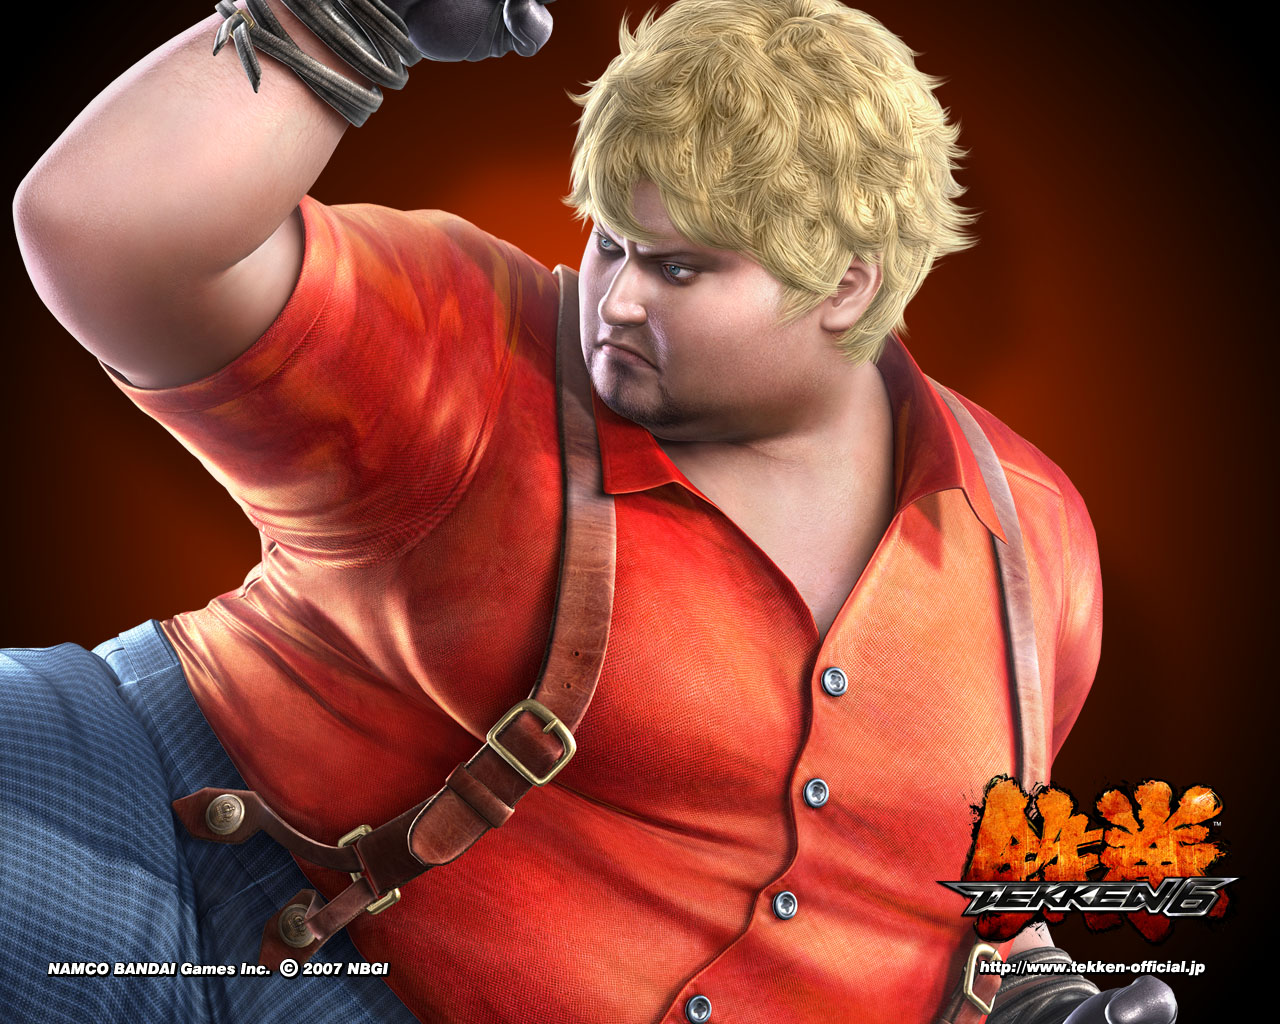 HD wallpapers All Characters of Tekken 6 Game HD Wallpapers in 1280x1024